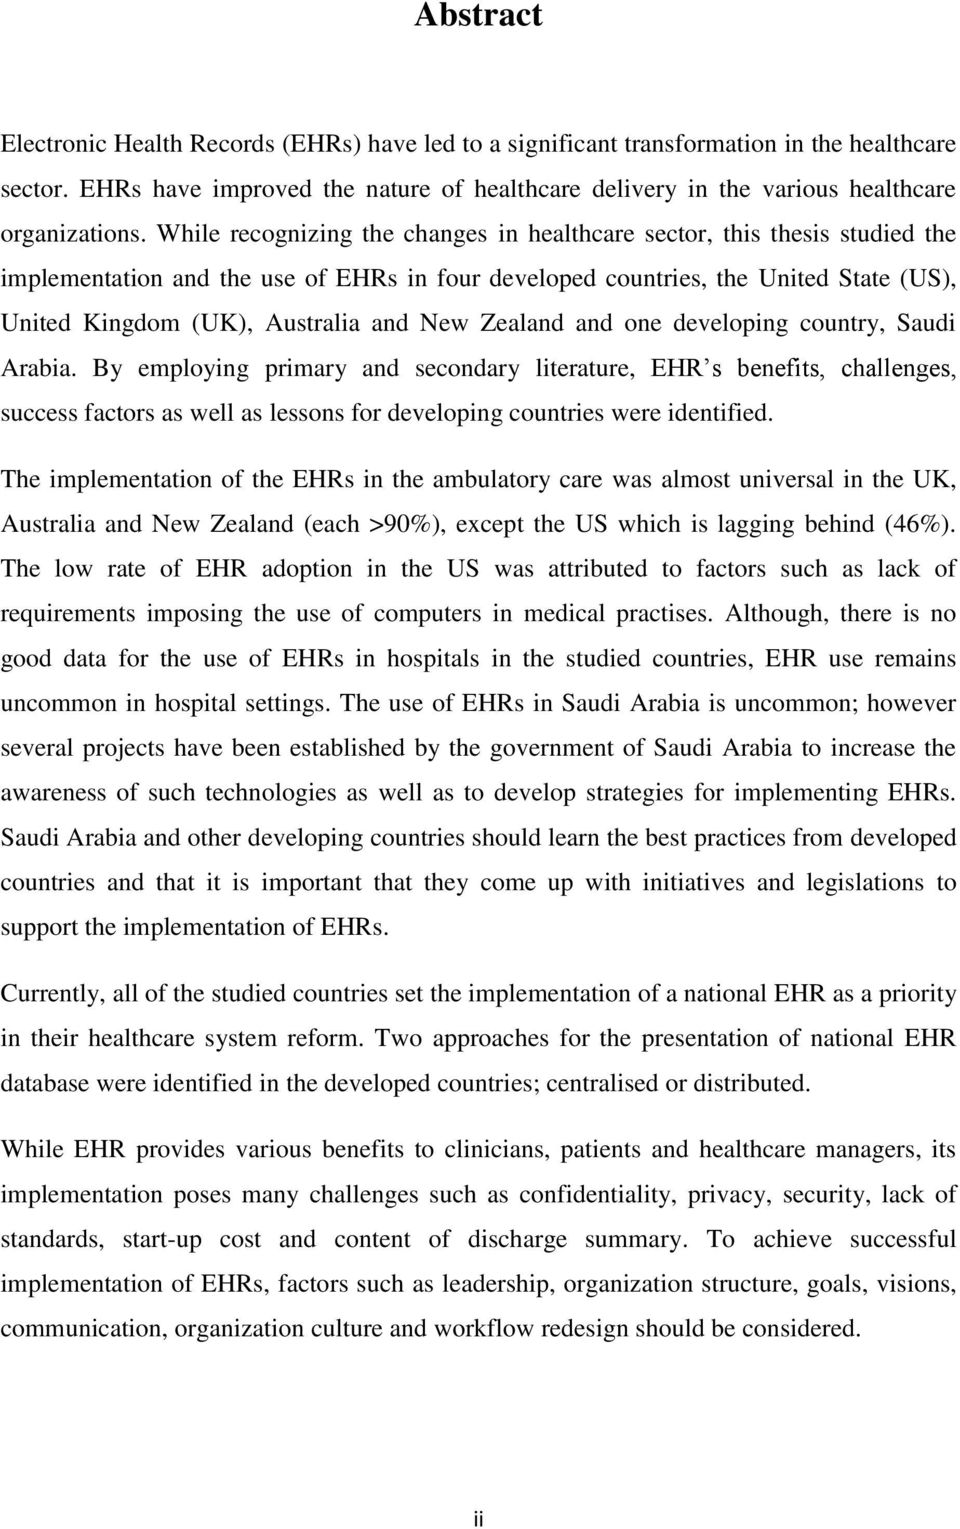 While recognizing the changes in healthcare sector, this thesis studied the implementation and the use of EHRs in four developed countries, the United State (US), United Kingdom (UK), Australia and